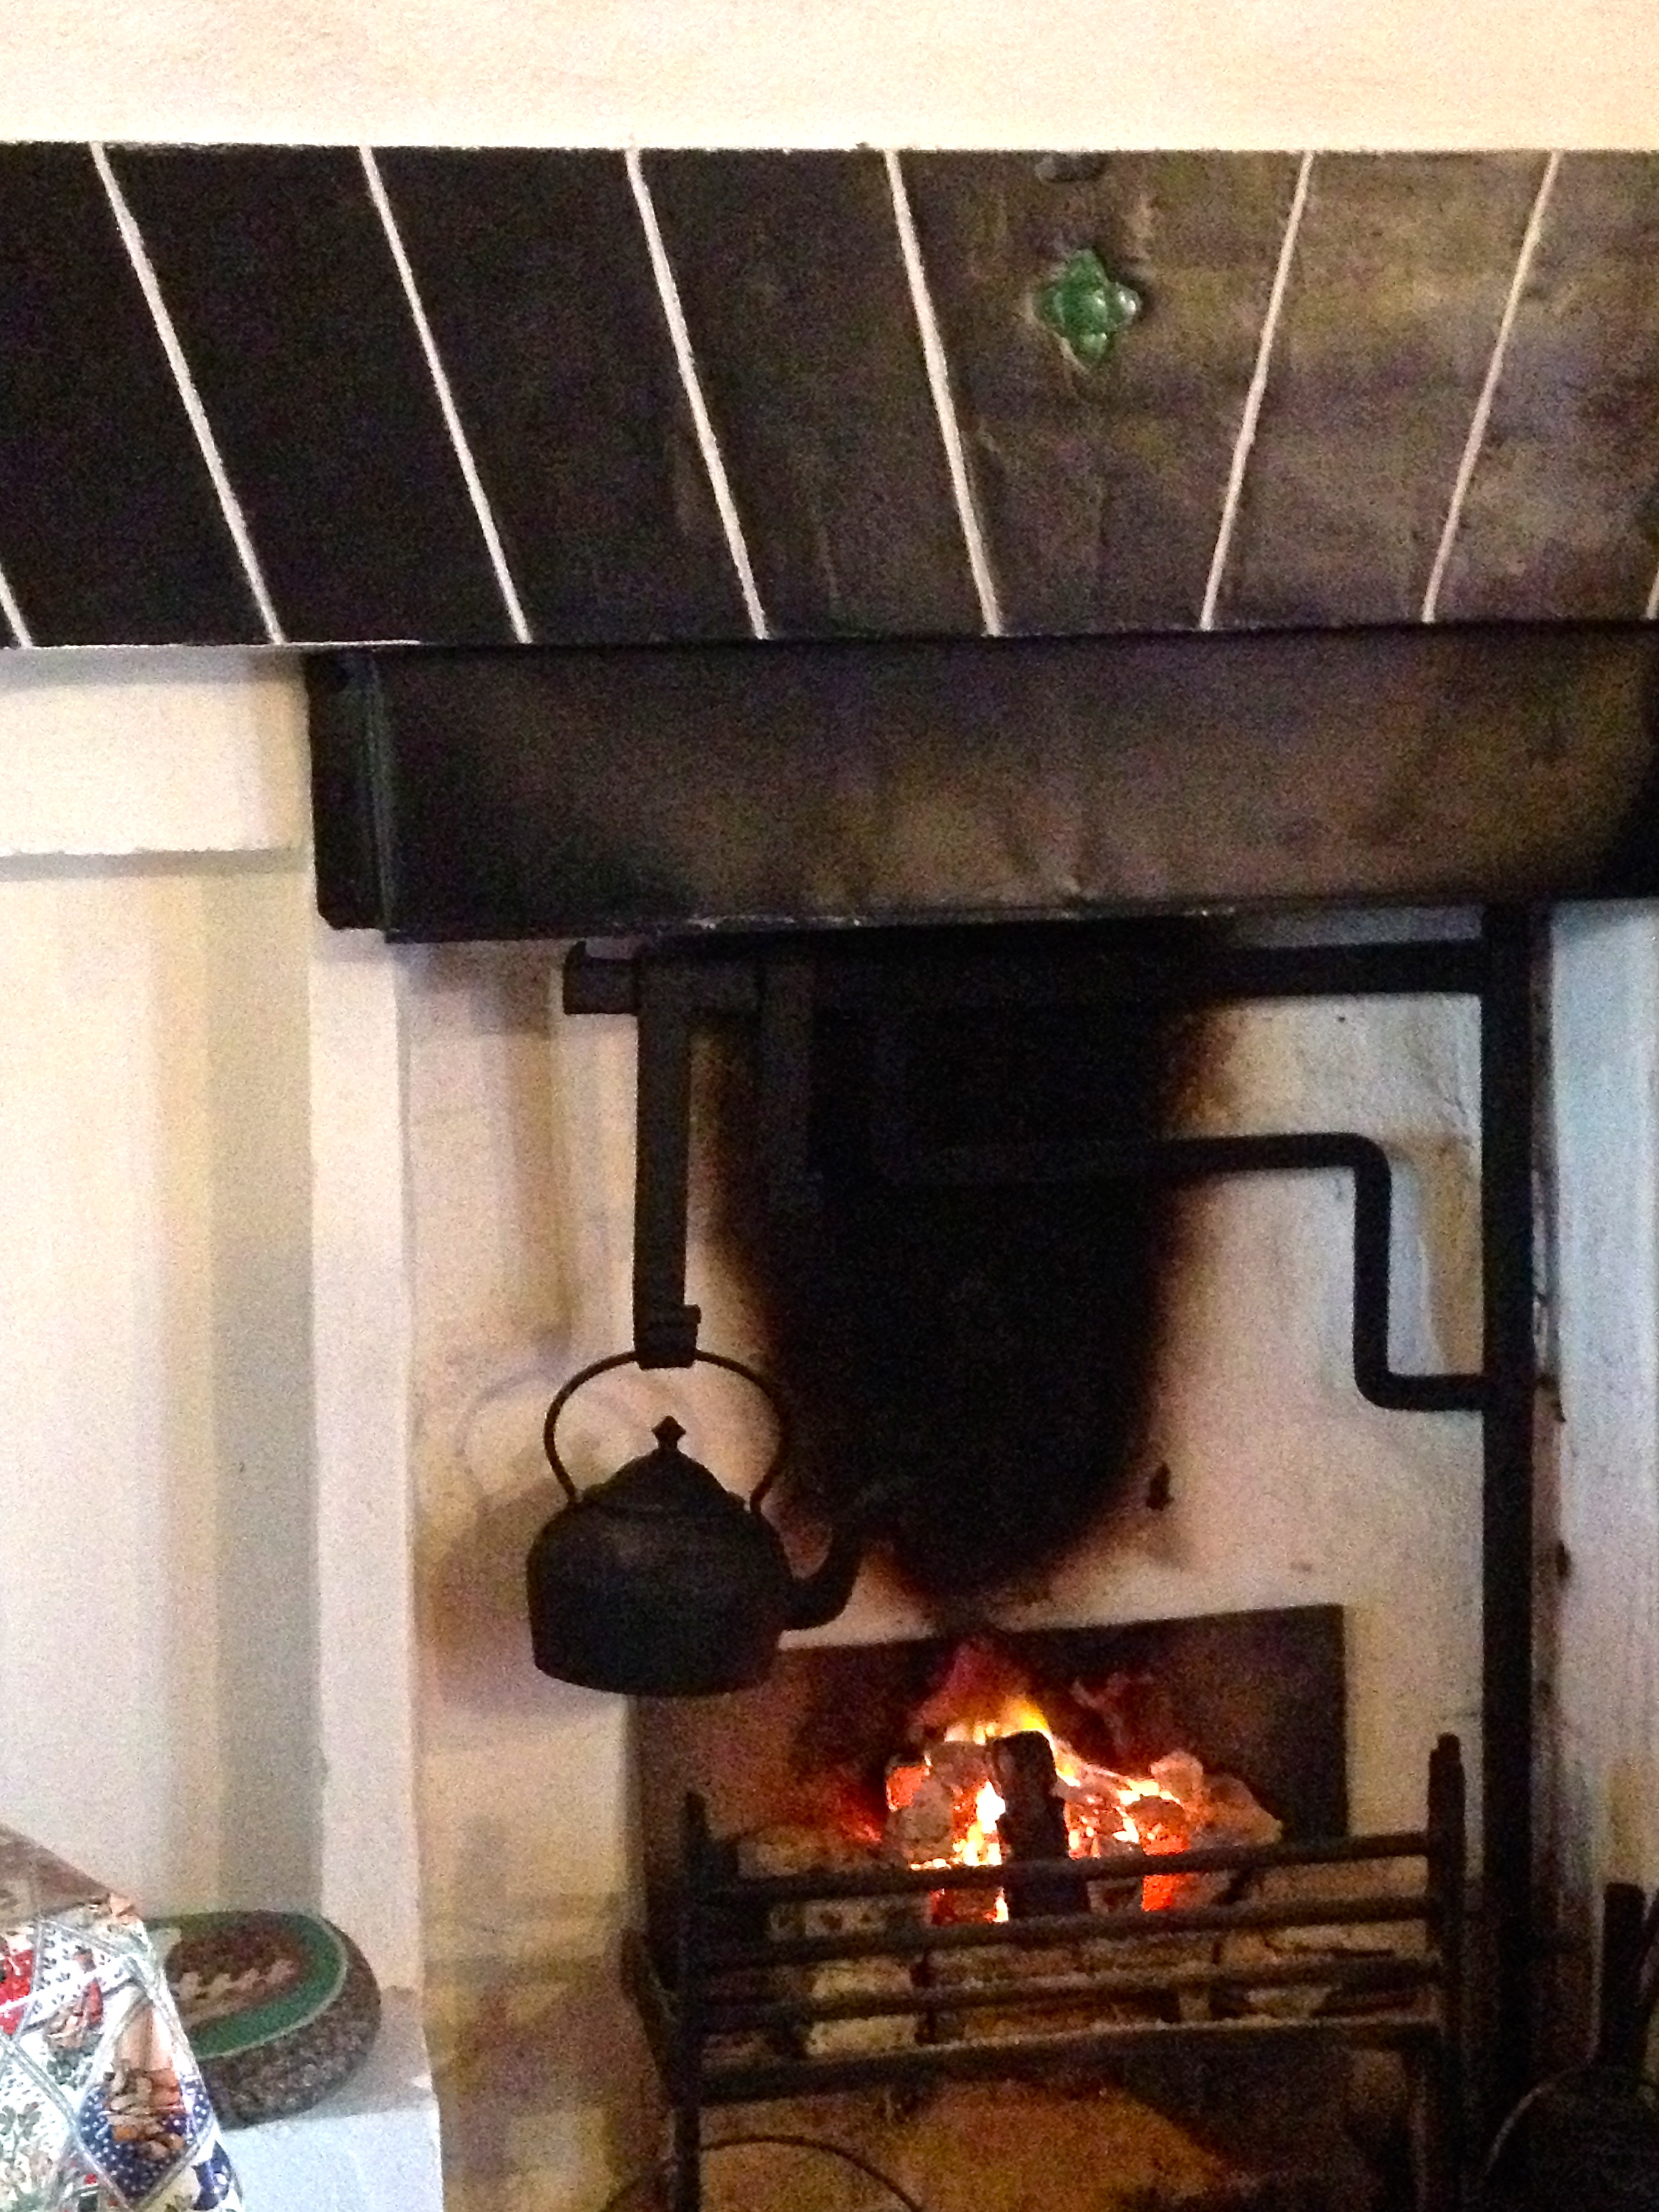 Irish cooking fireplace